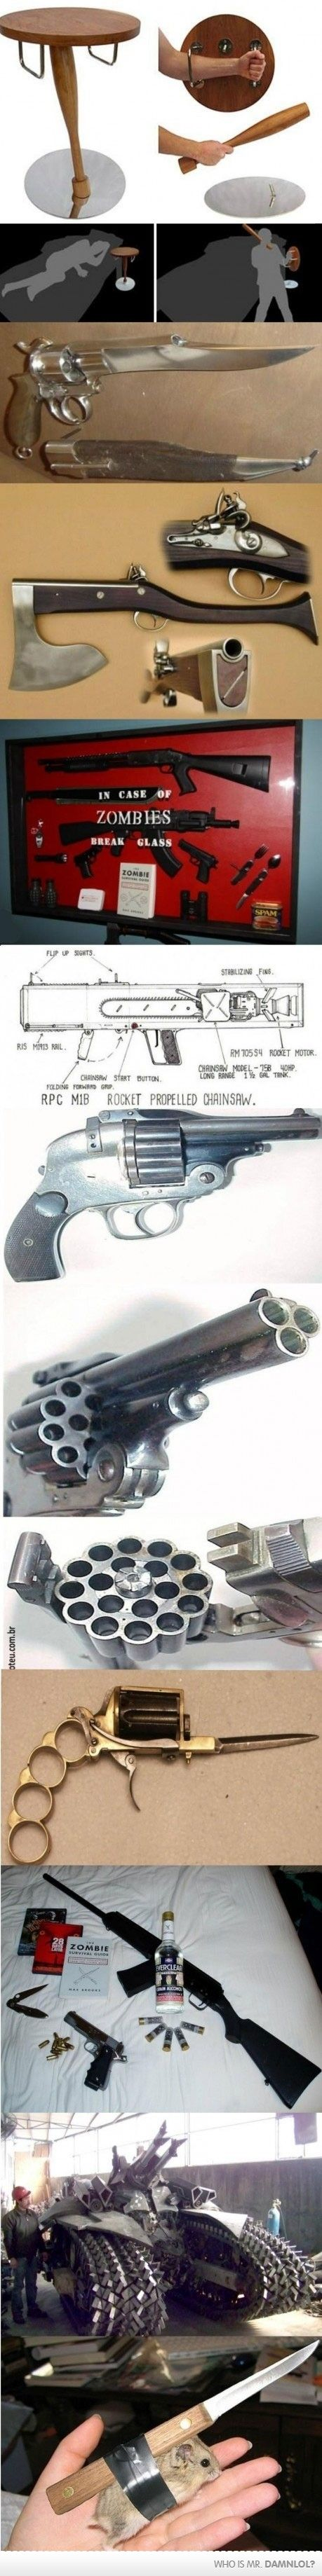 Wow how awesome... weapons for zombie attack